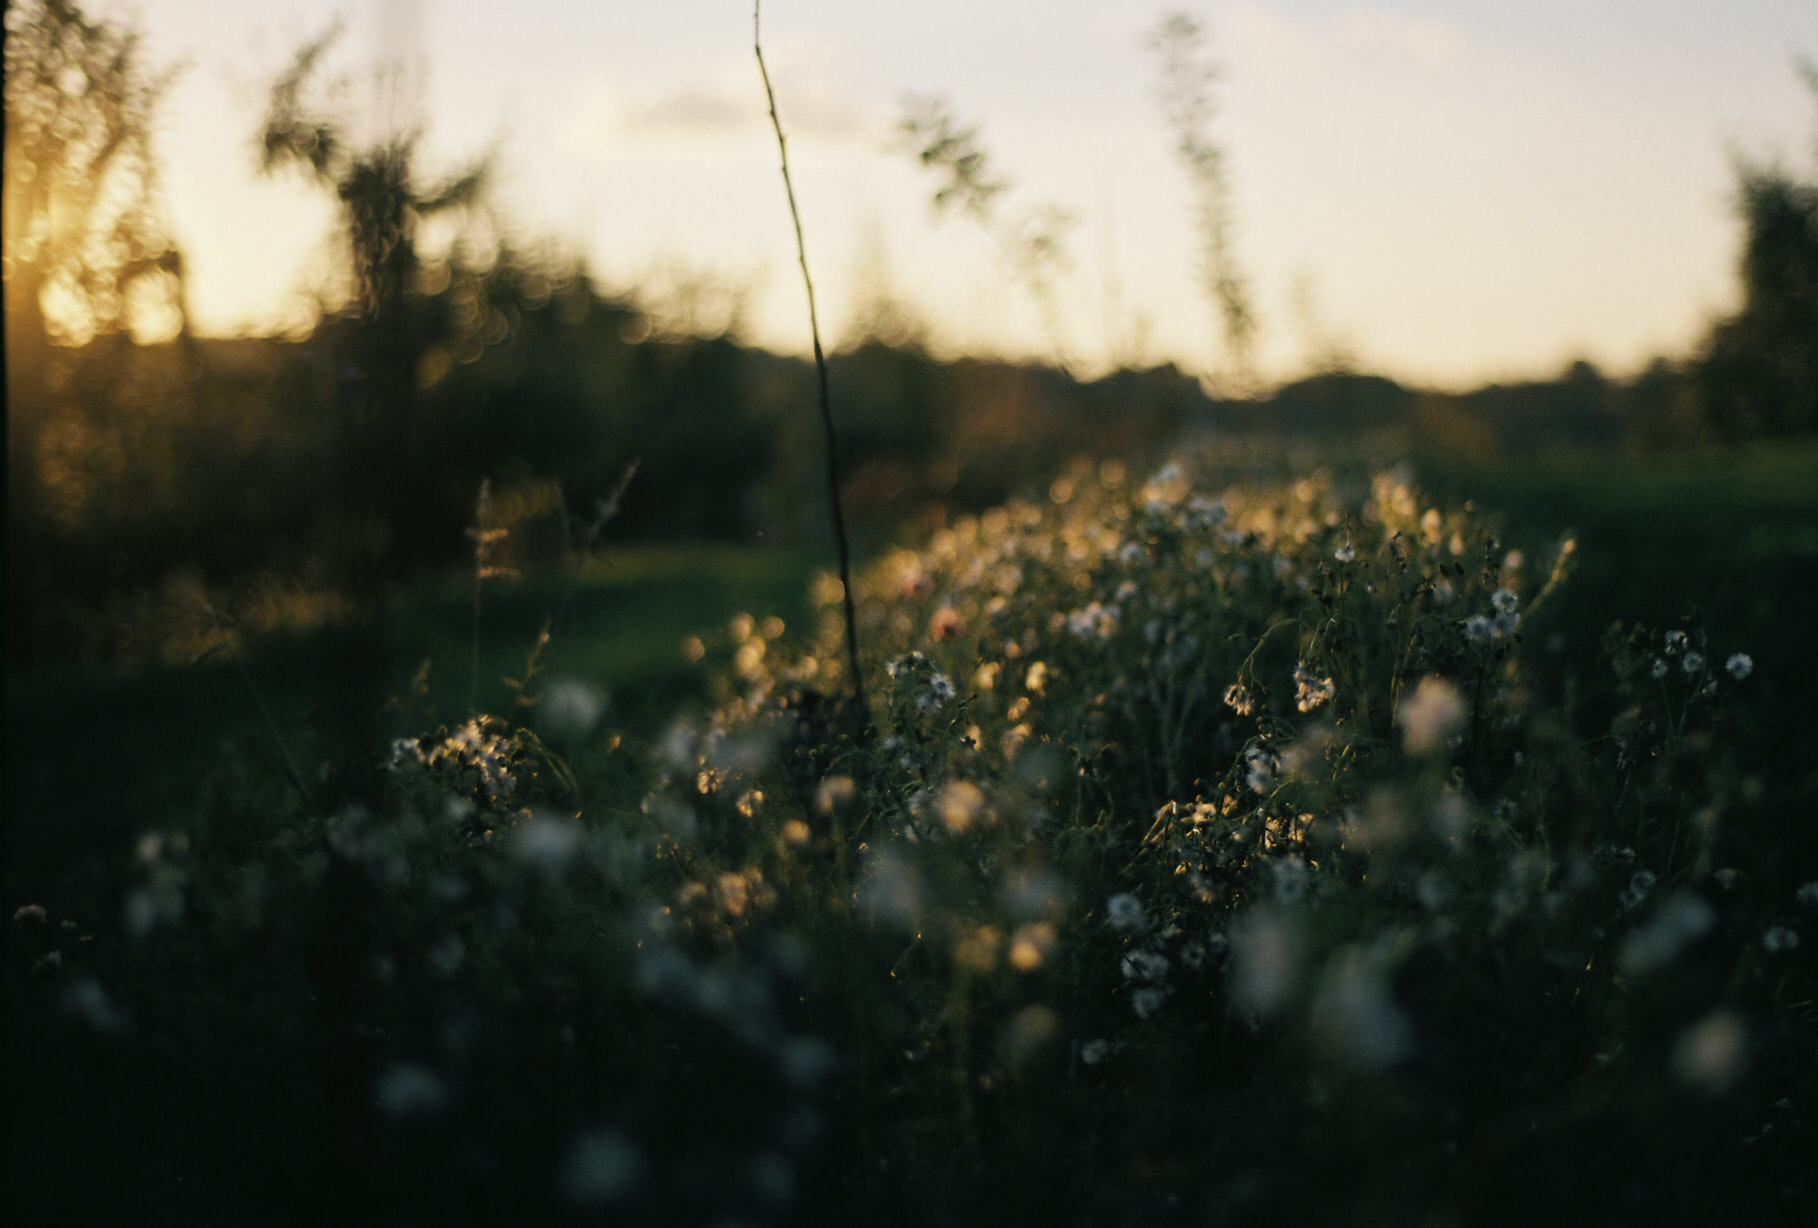 A fuzzy shot of a patch of flowers during sunset